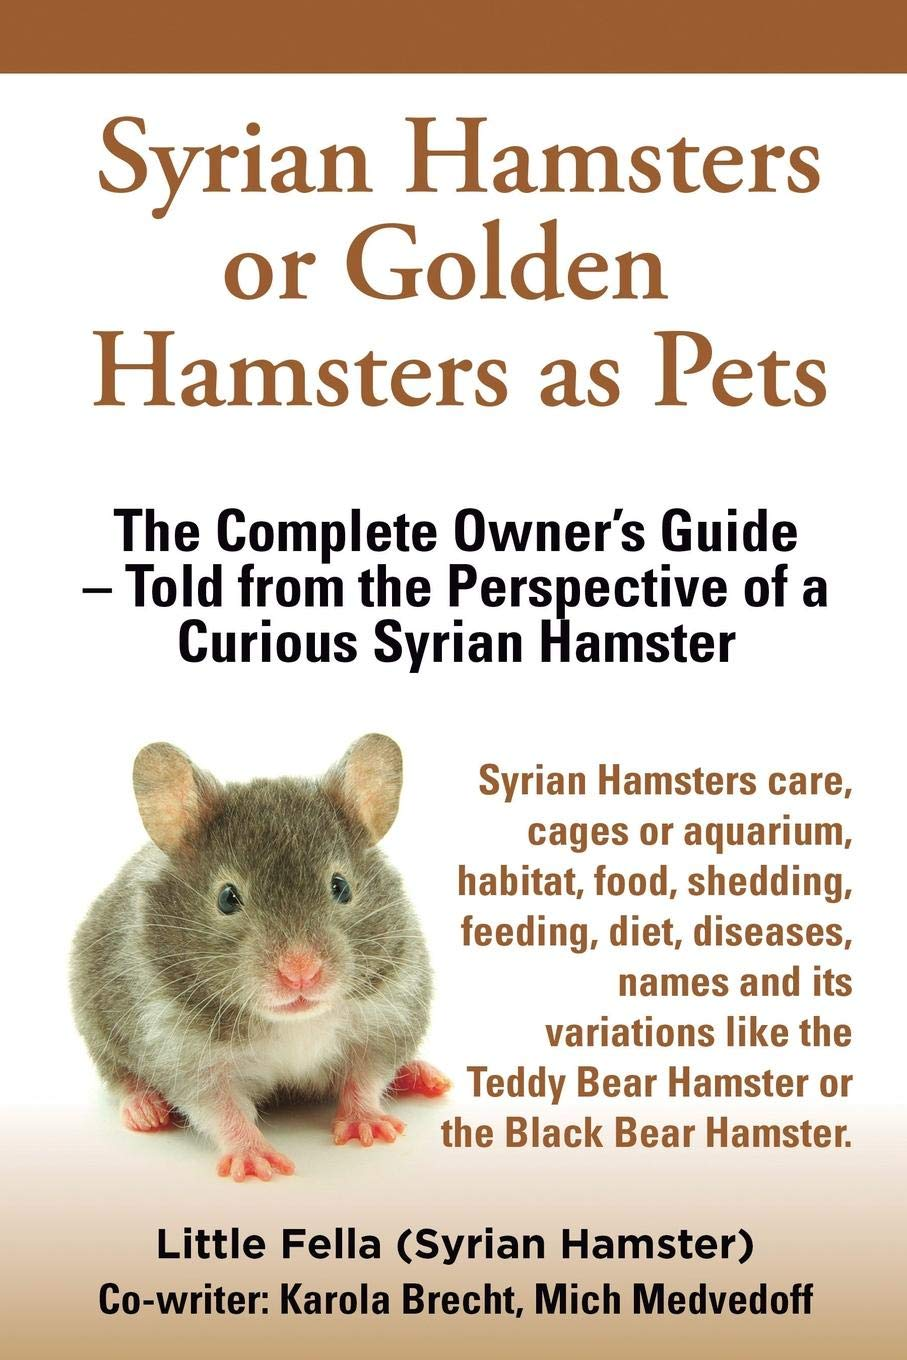 Syrian Hamsters or Golden Hamsters as Pets: Care, cages or